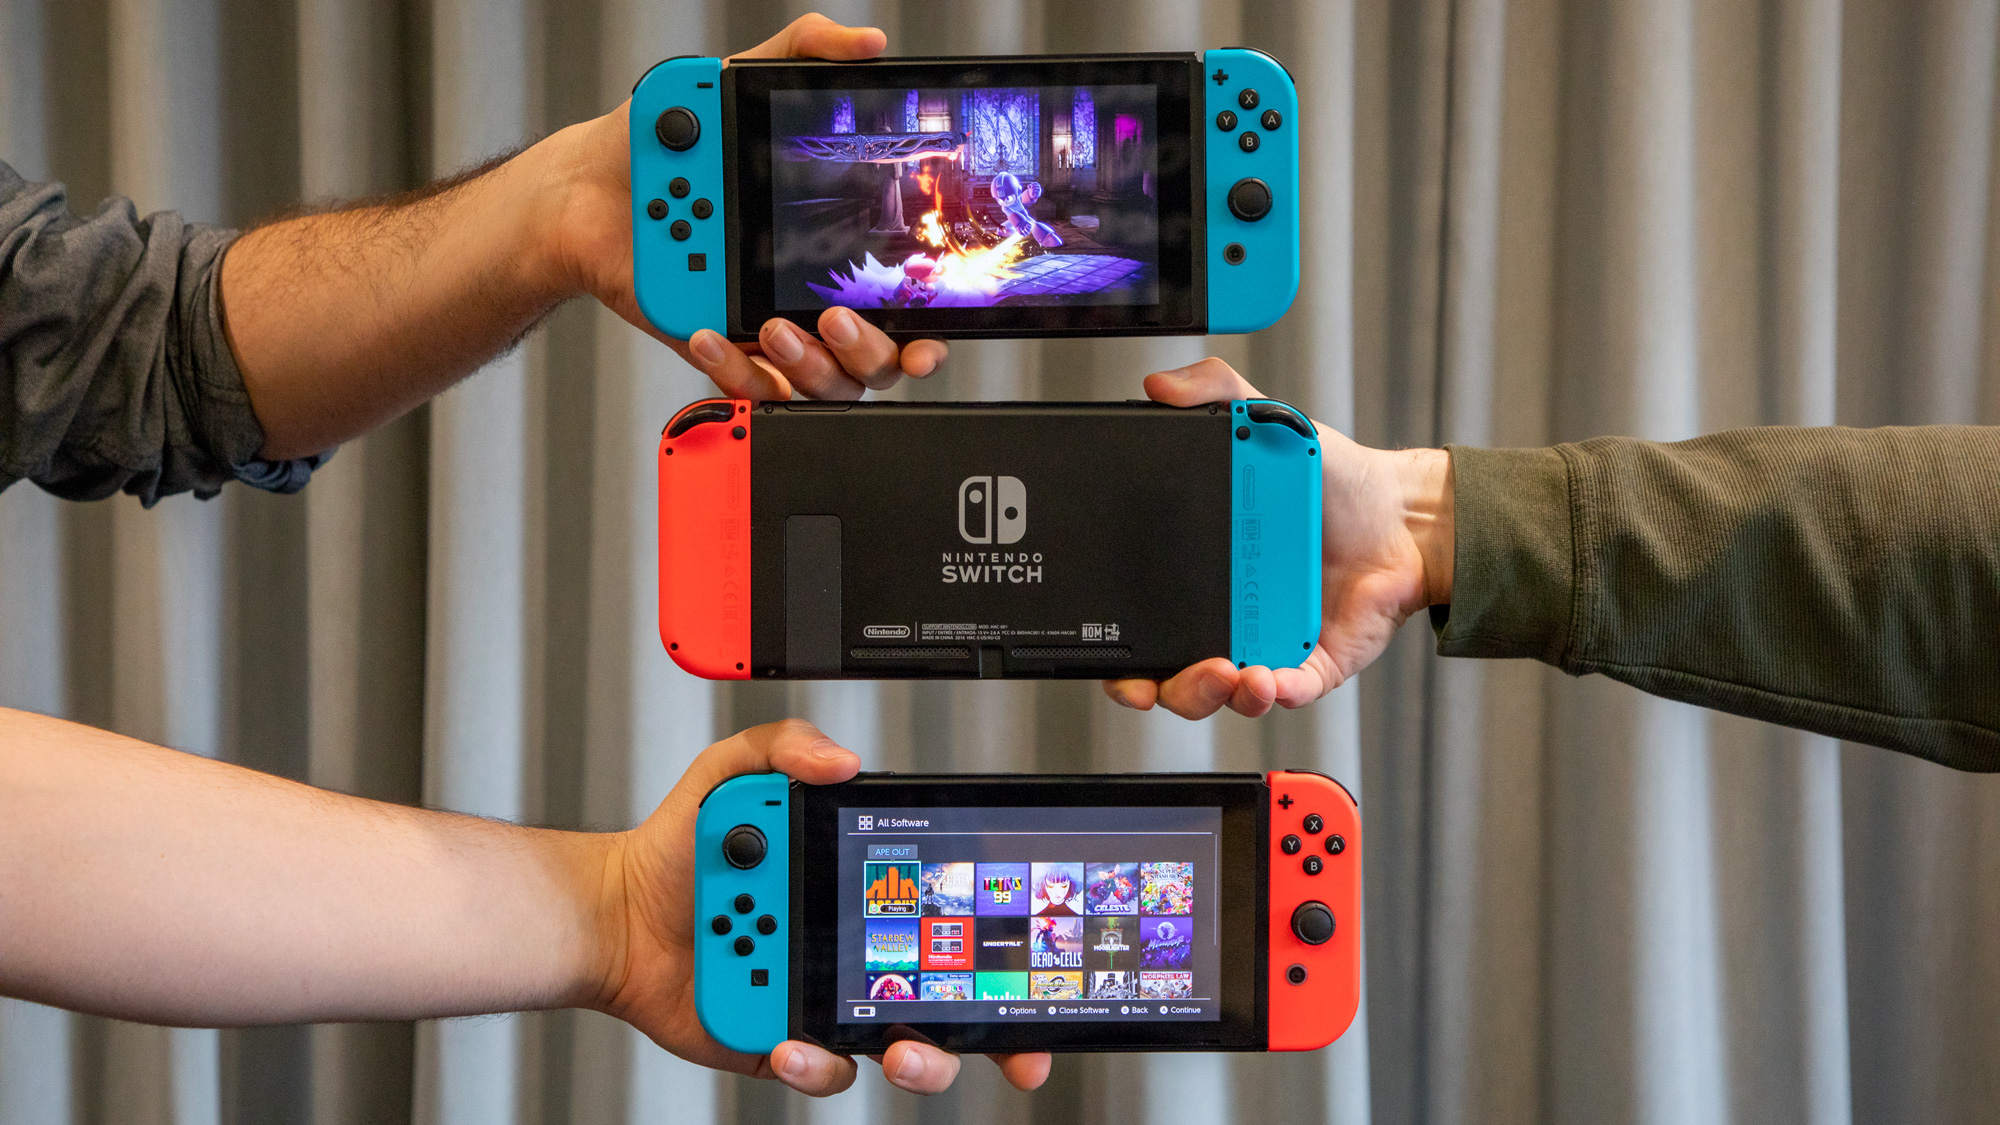 How to Make Sure You're Buying the New Nintendo Switch